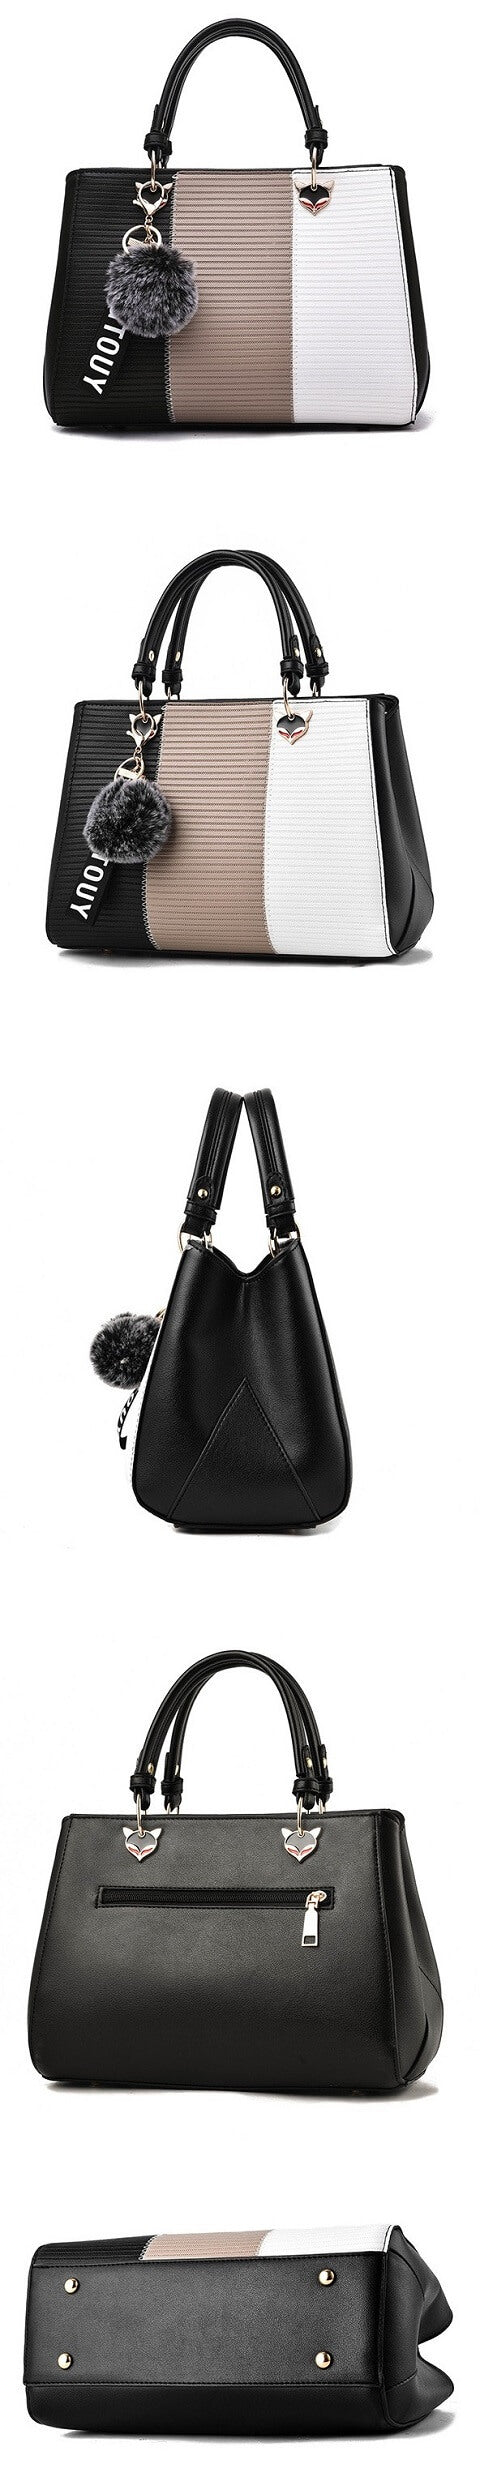 Natalia Atkinson handbag can be transformed from a crossbody bag to a top-handle bag to suit your ensembles.